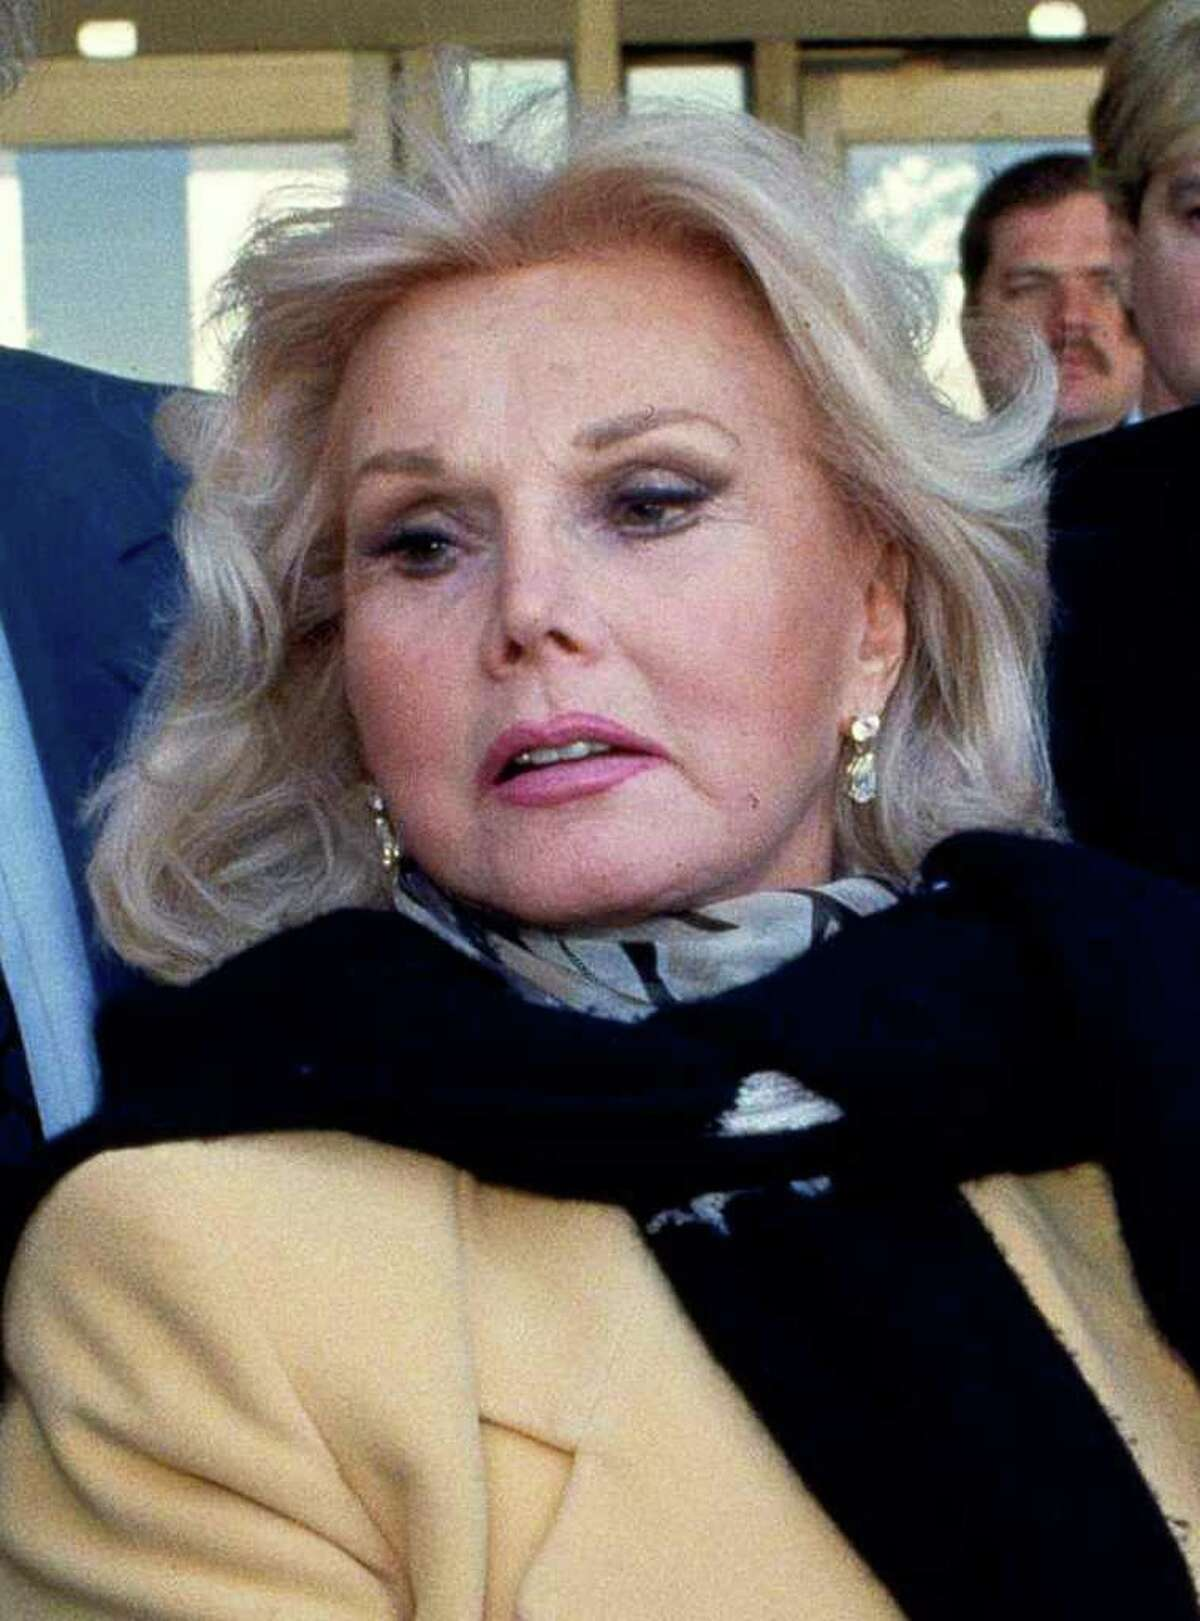 FILE - In this Jan. 27, 1993 file photo, actress Zsa Zsa Gabor is shown in Midland, Texas. Constance Francesca Hilton , the daughter of Gabor, is asking a Los Angeles court to place her mother in a conservatorship that will independently control the ailing glamor queen's medical care and financial needs. (AP Photo/Curt Wilcott, File)